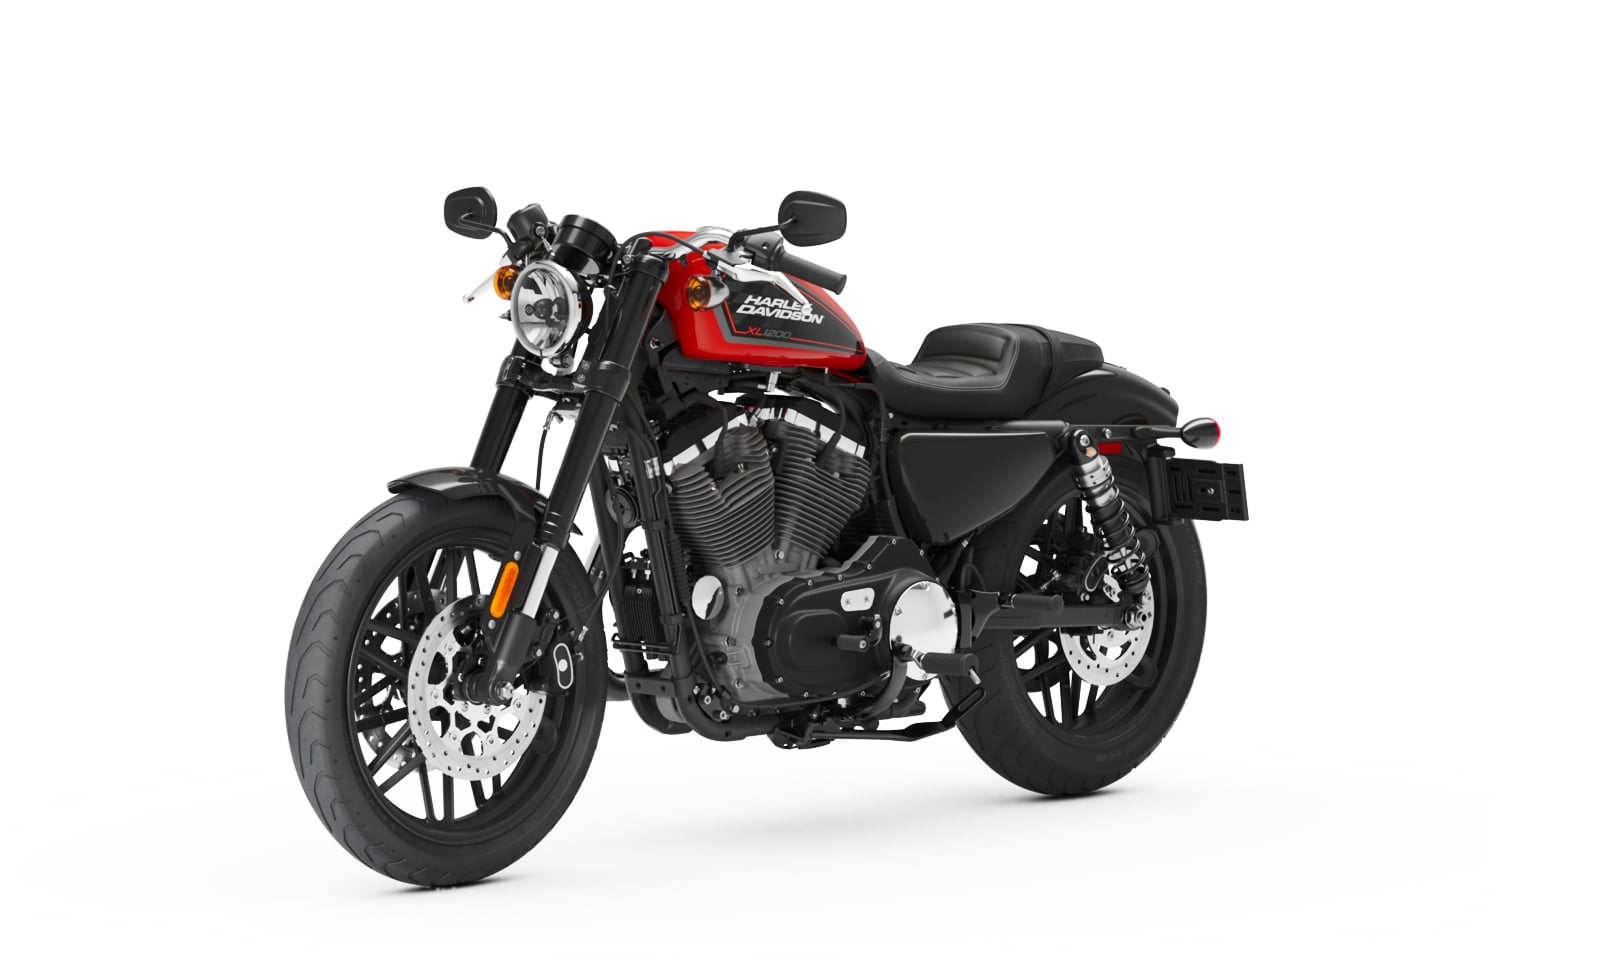 2020 Roadster Motorcycle Harley Davidson Usa